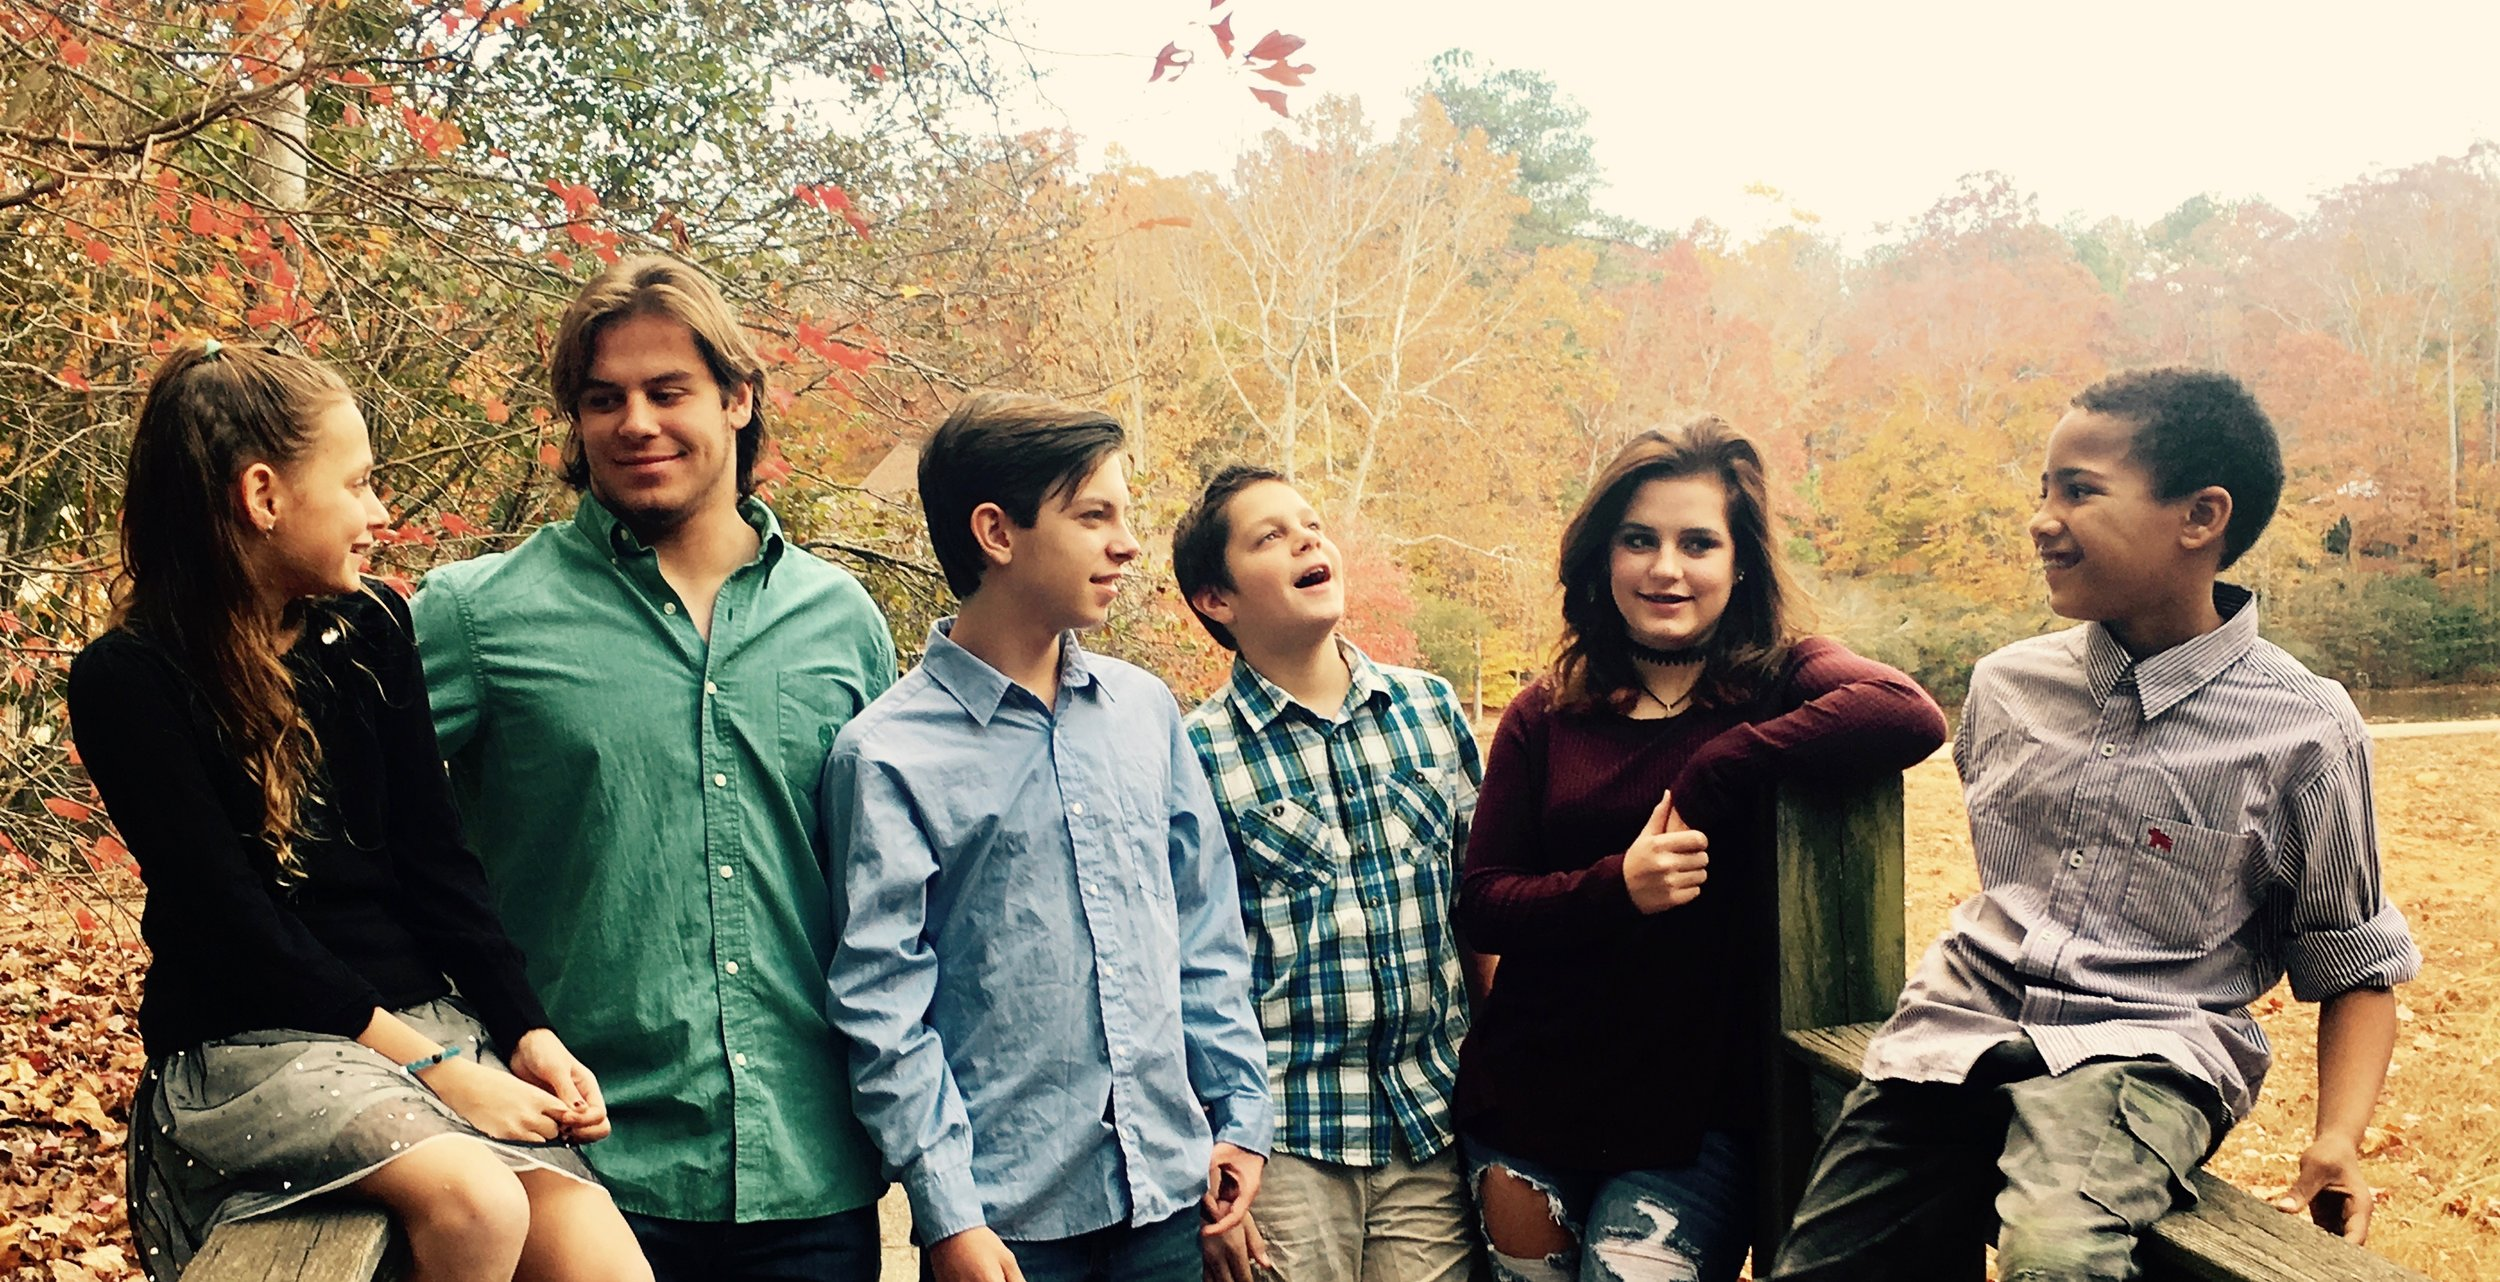 My kids for Thanksgiving